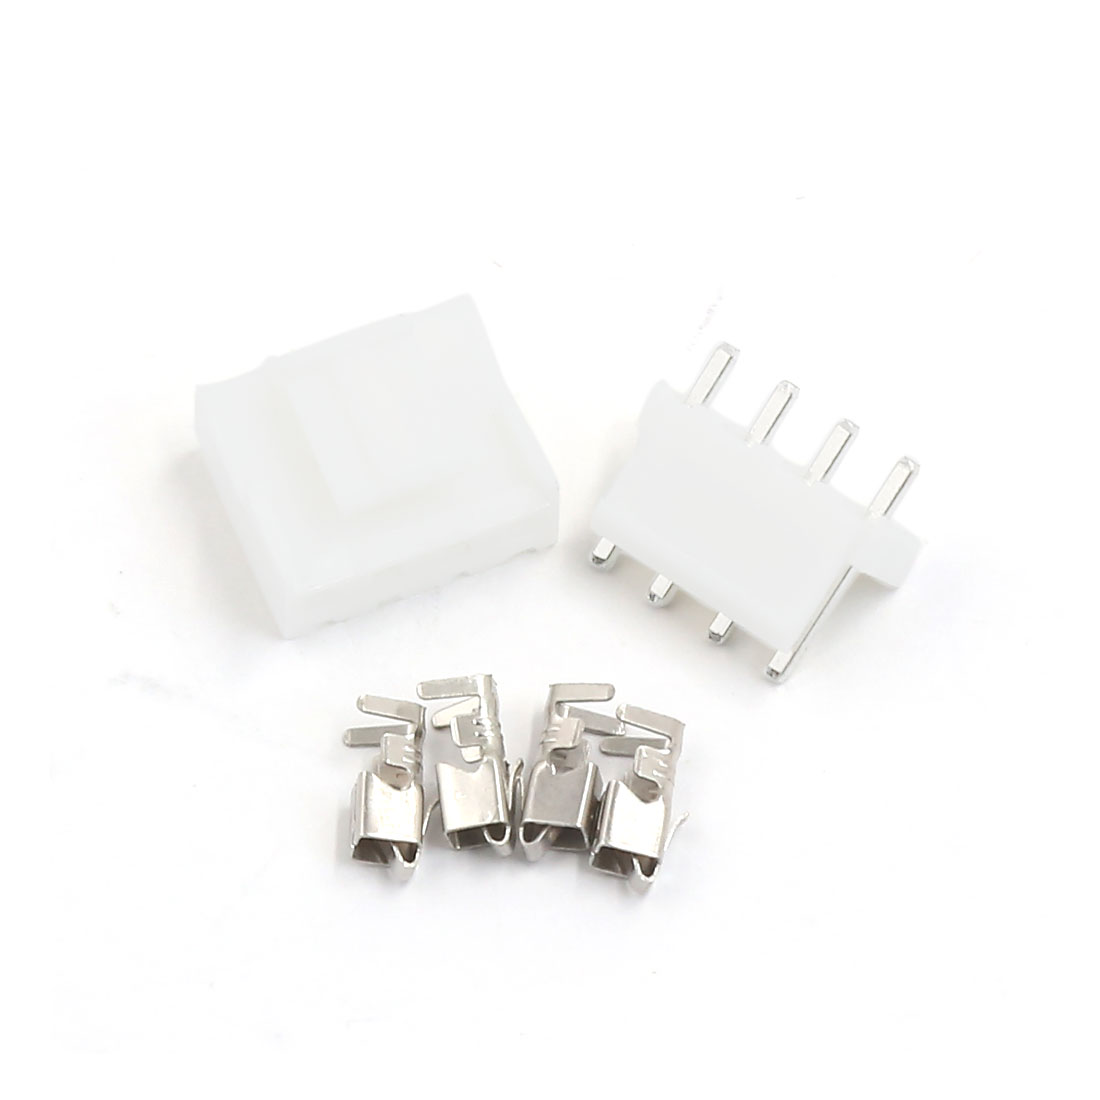 5 Sets 4 Pins VH3.96 Connector 3.96mm Pin Terminal Needle Seat